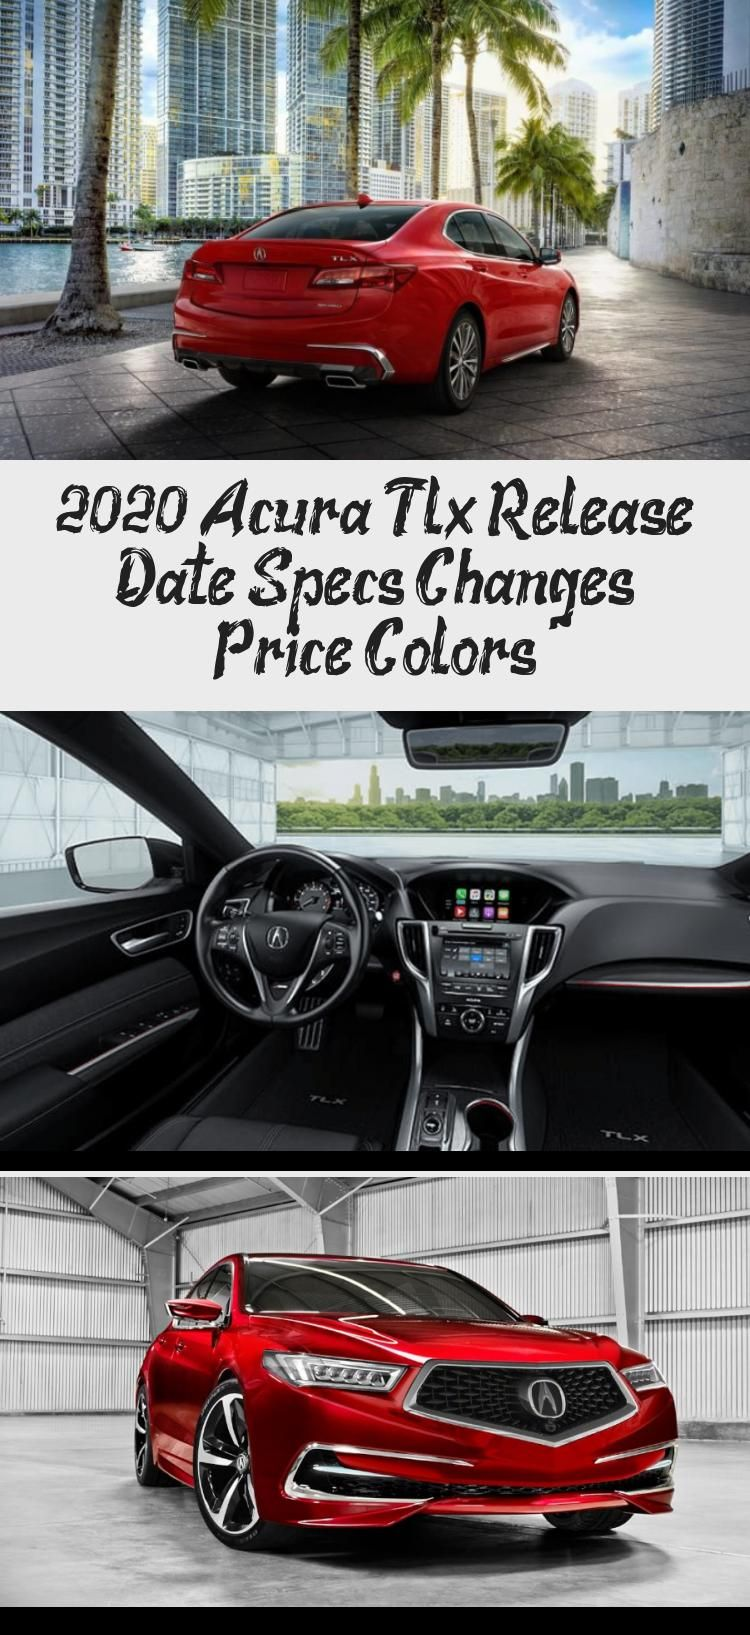 2020 Acura Tlx Release Date Specs Changes Price Colors Acurablack Acuravideos Acuradeportivo Acura2016 Acuracoupe In 2020 Acura Tlx Acura Acura Legend